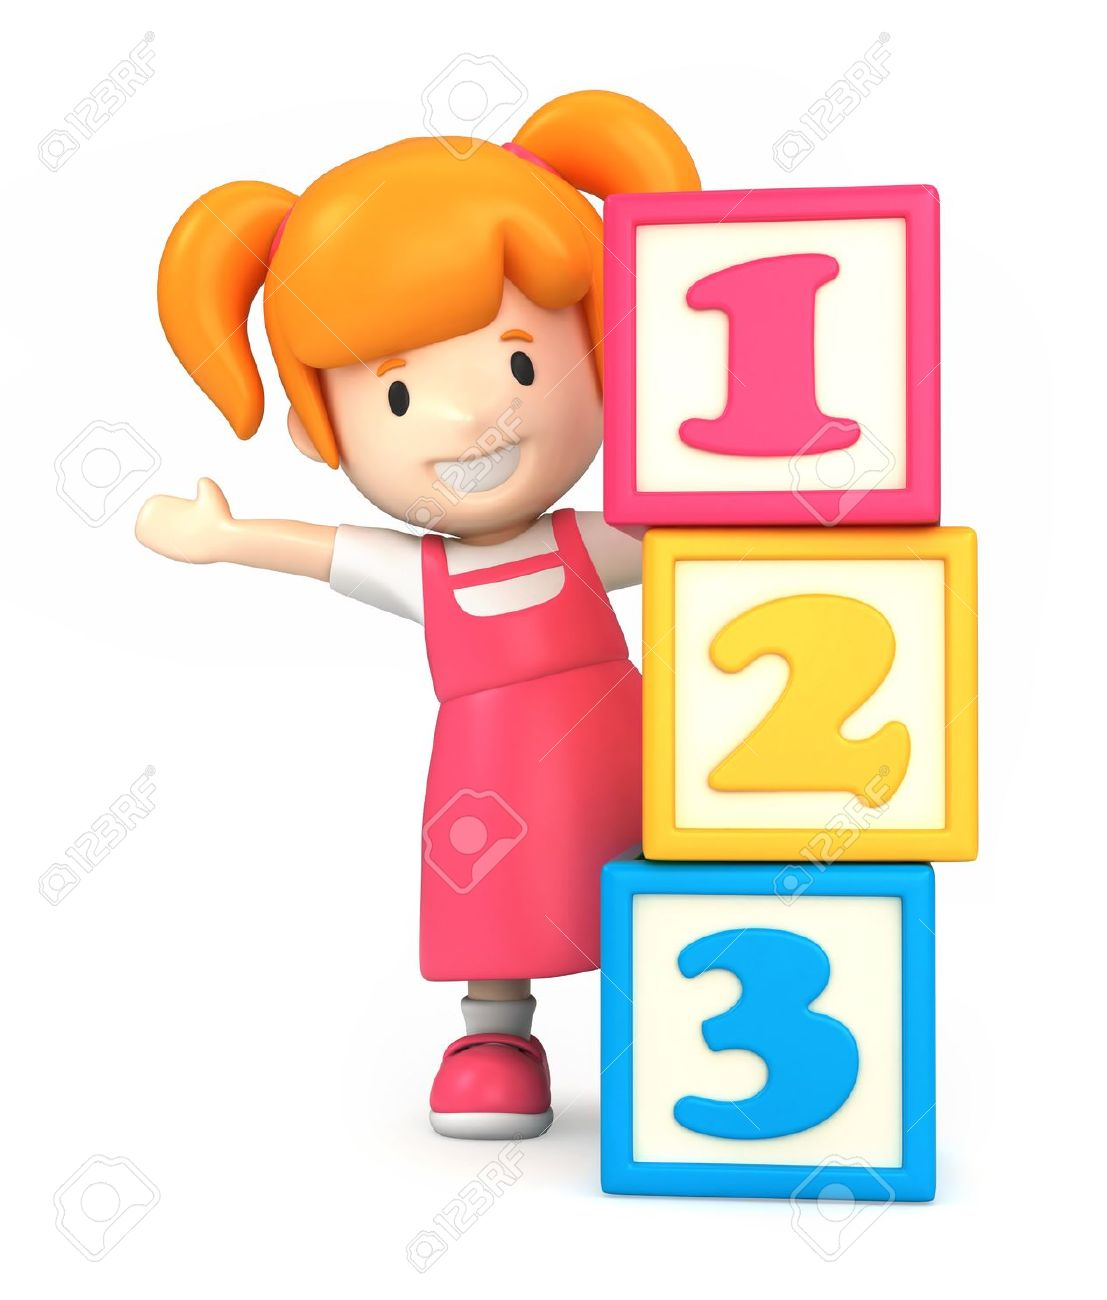 Number block clipart picture transparent library Number block clipart - ClipartFox picture transparent library